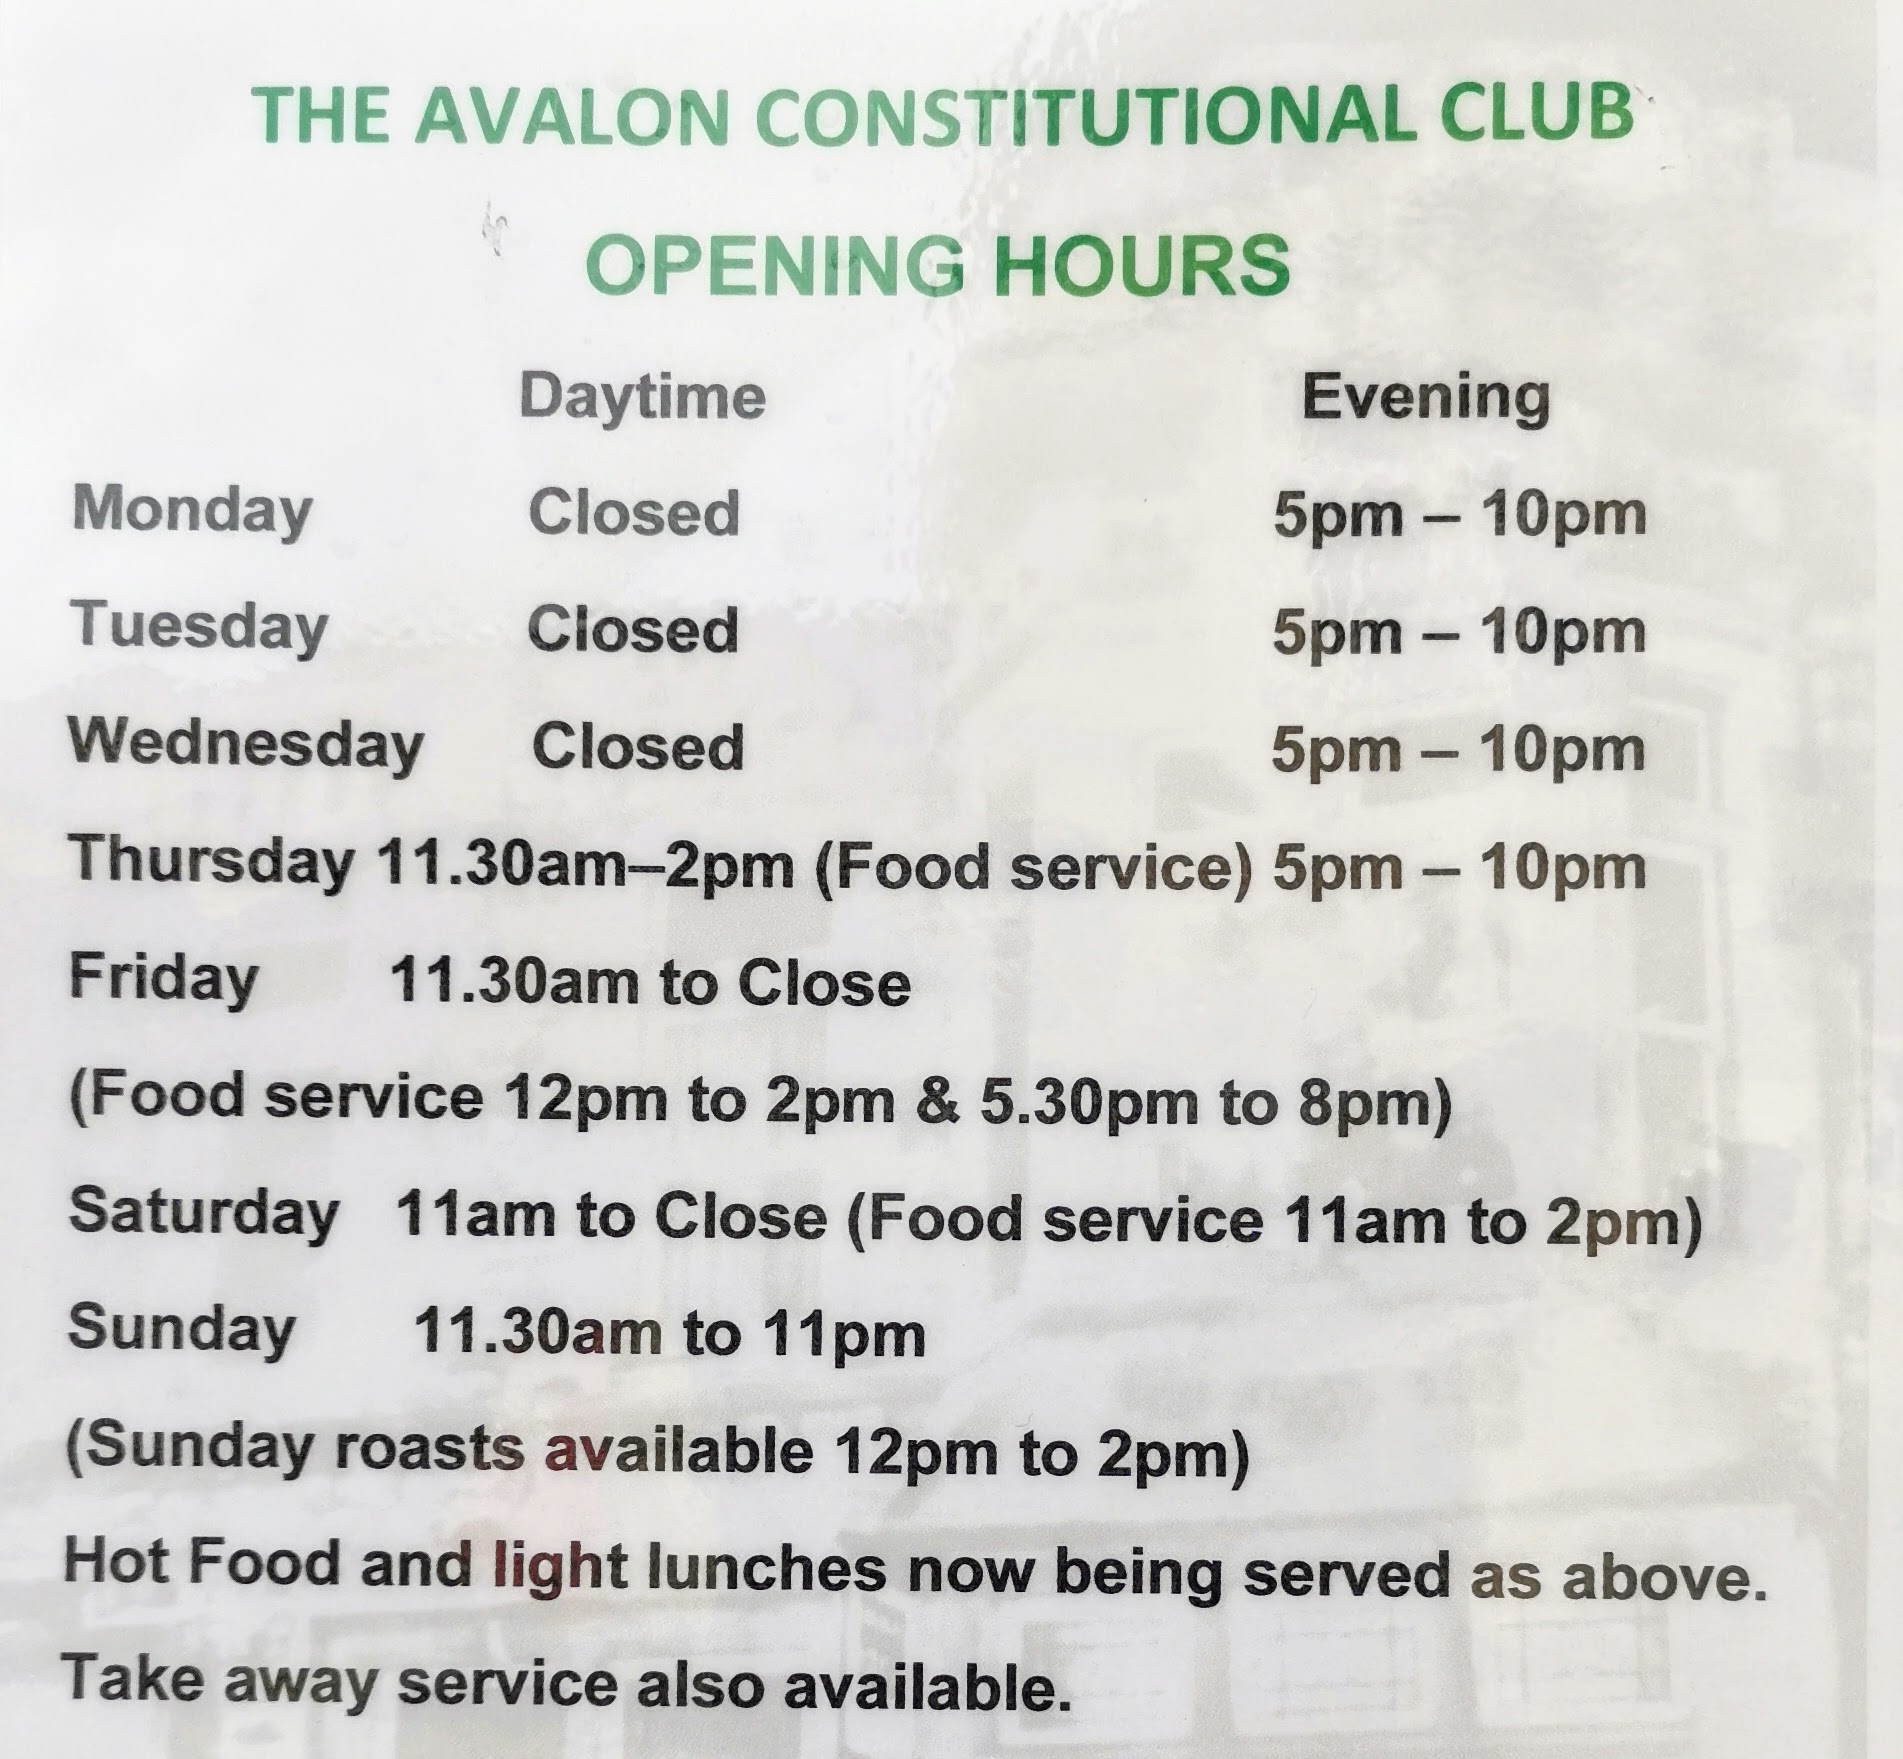 Avalon Club Opening Hours